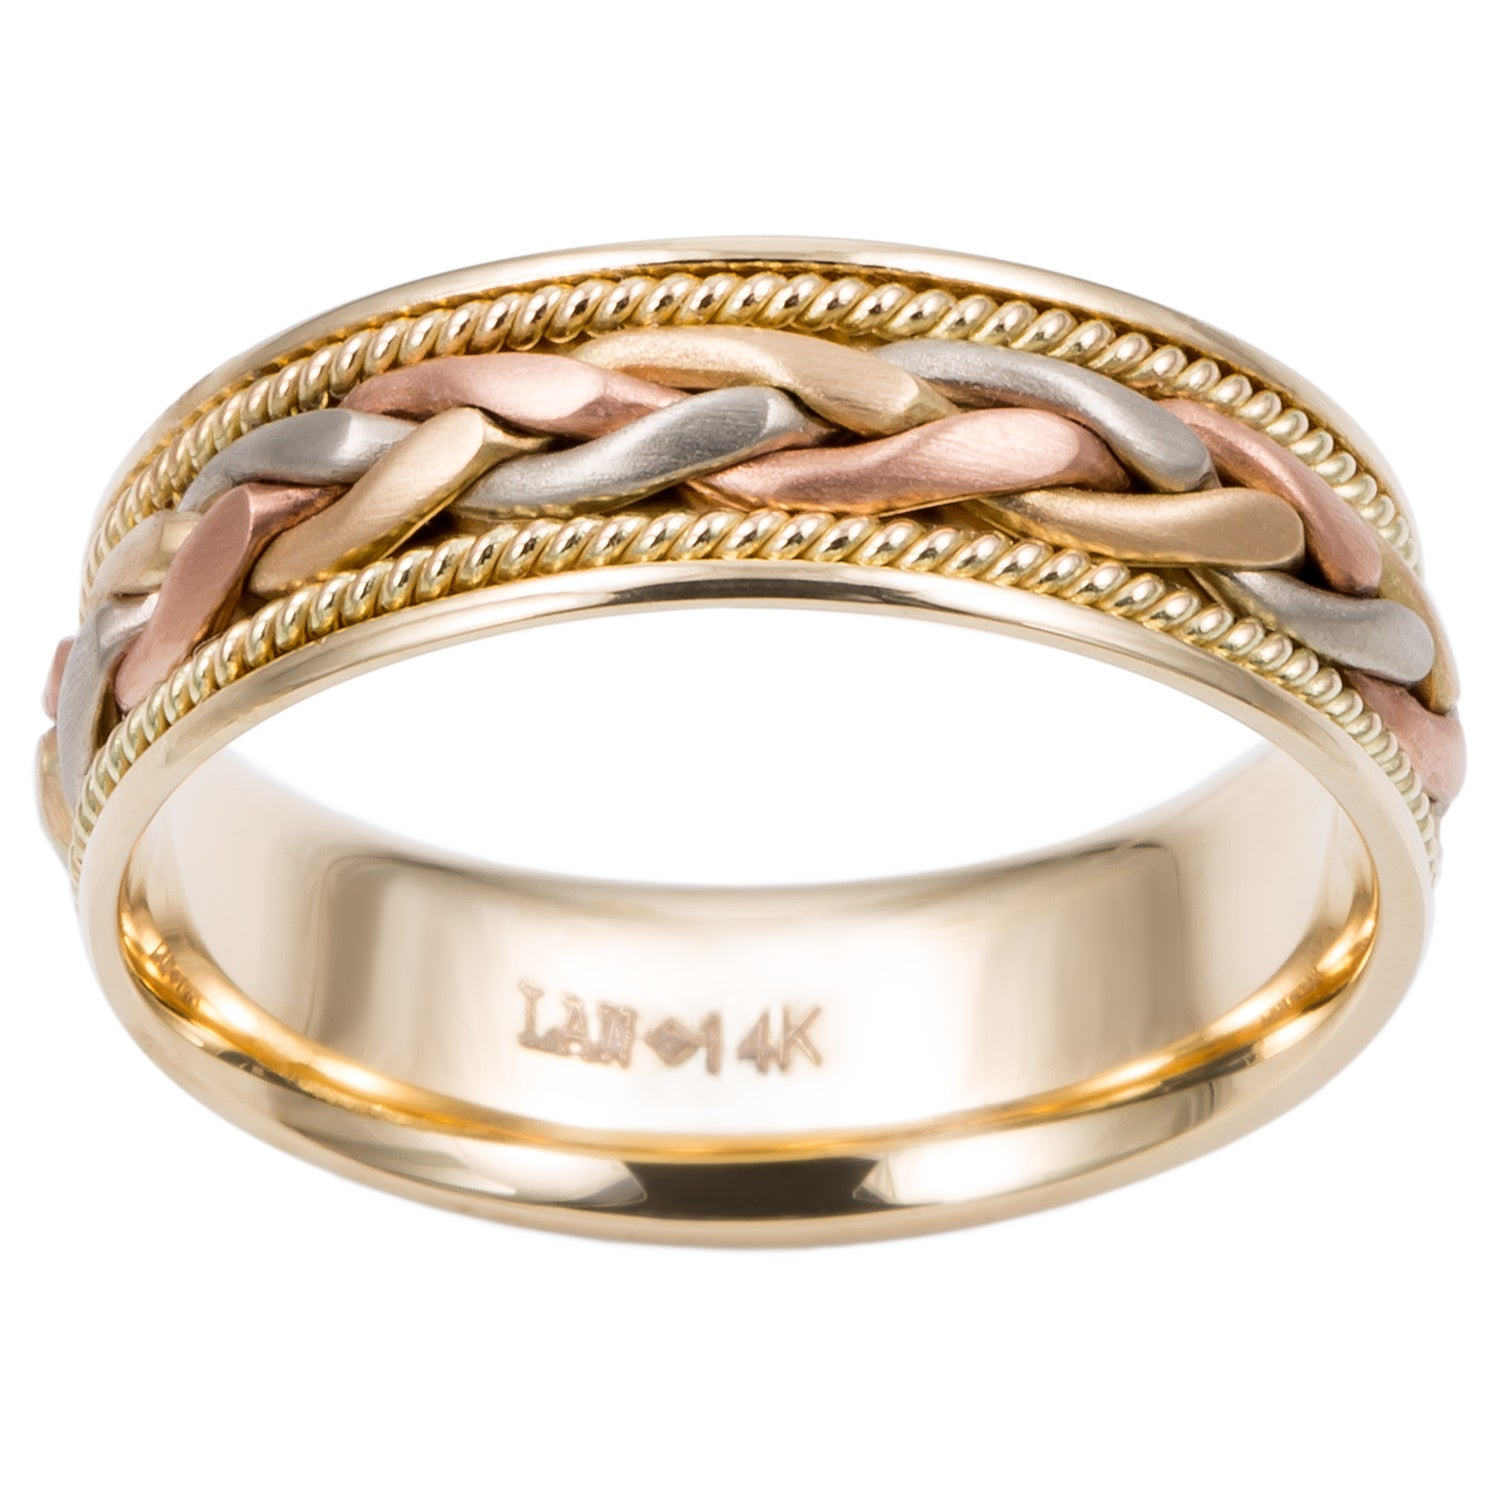 normal tri jewelry kors stack ring in metallic tritone lyst tone product michael rings gallery gold